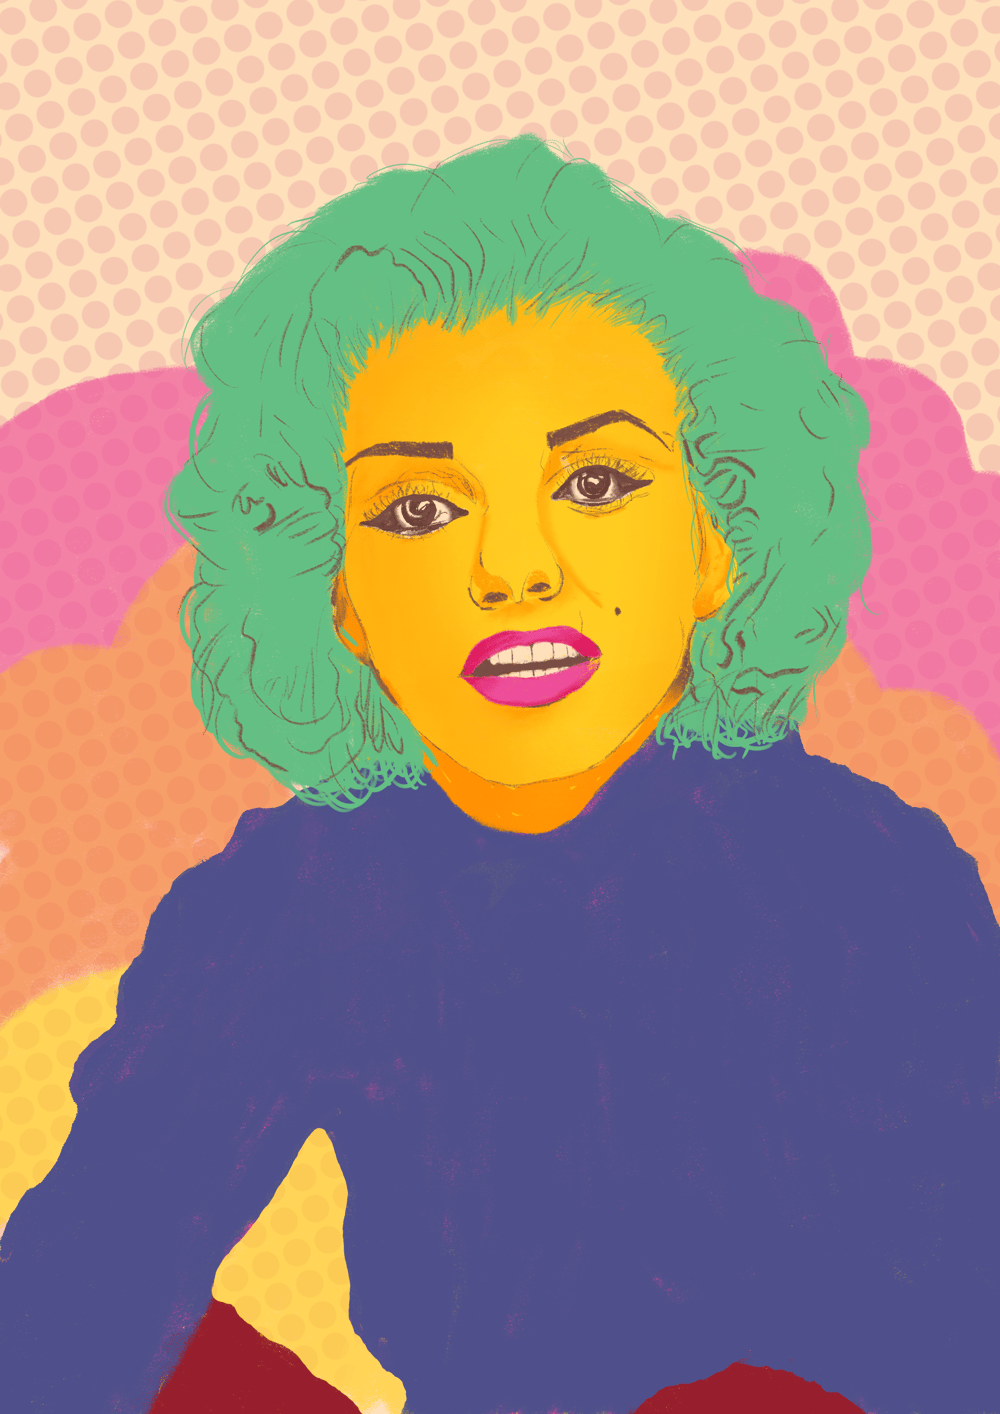 Marilyn Monroe - image 1 - student project